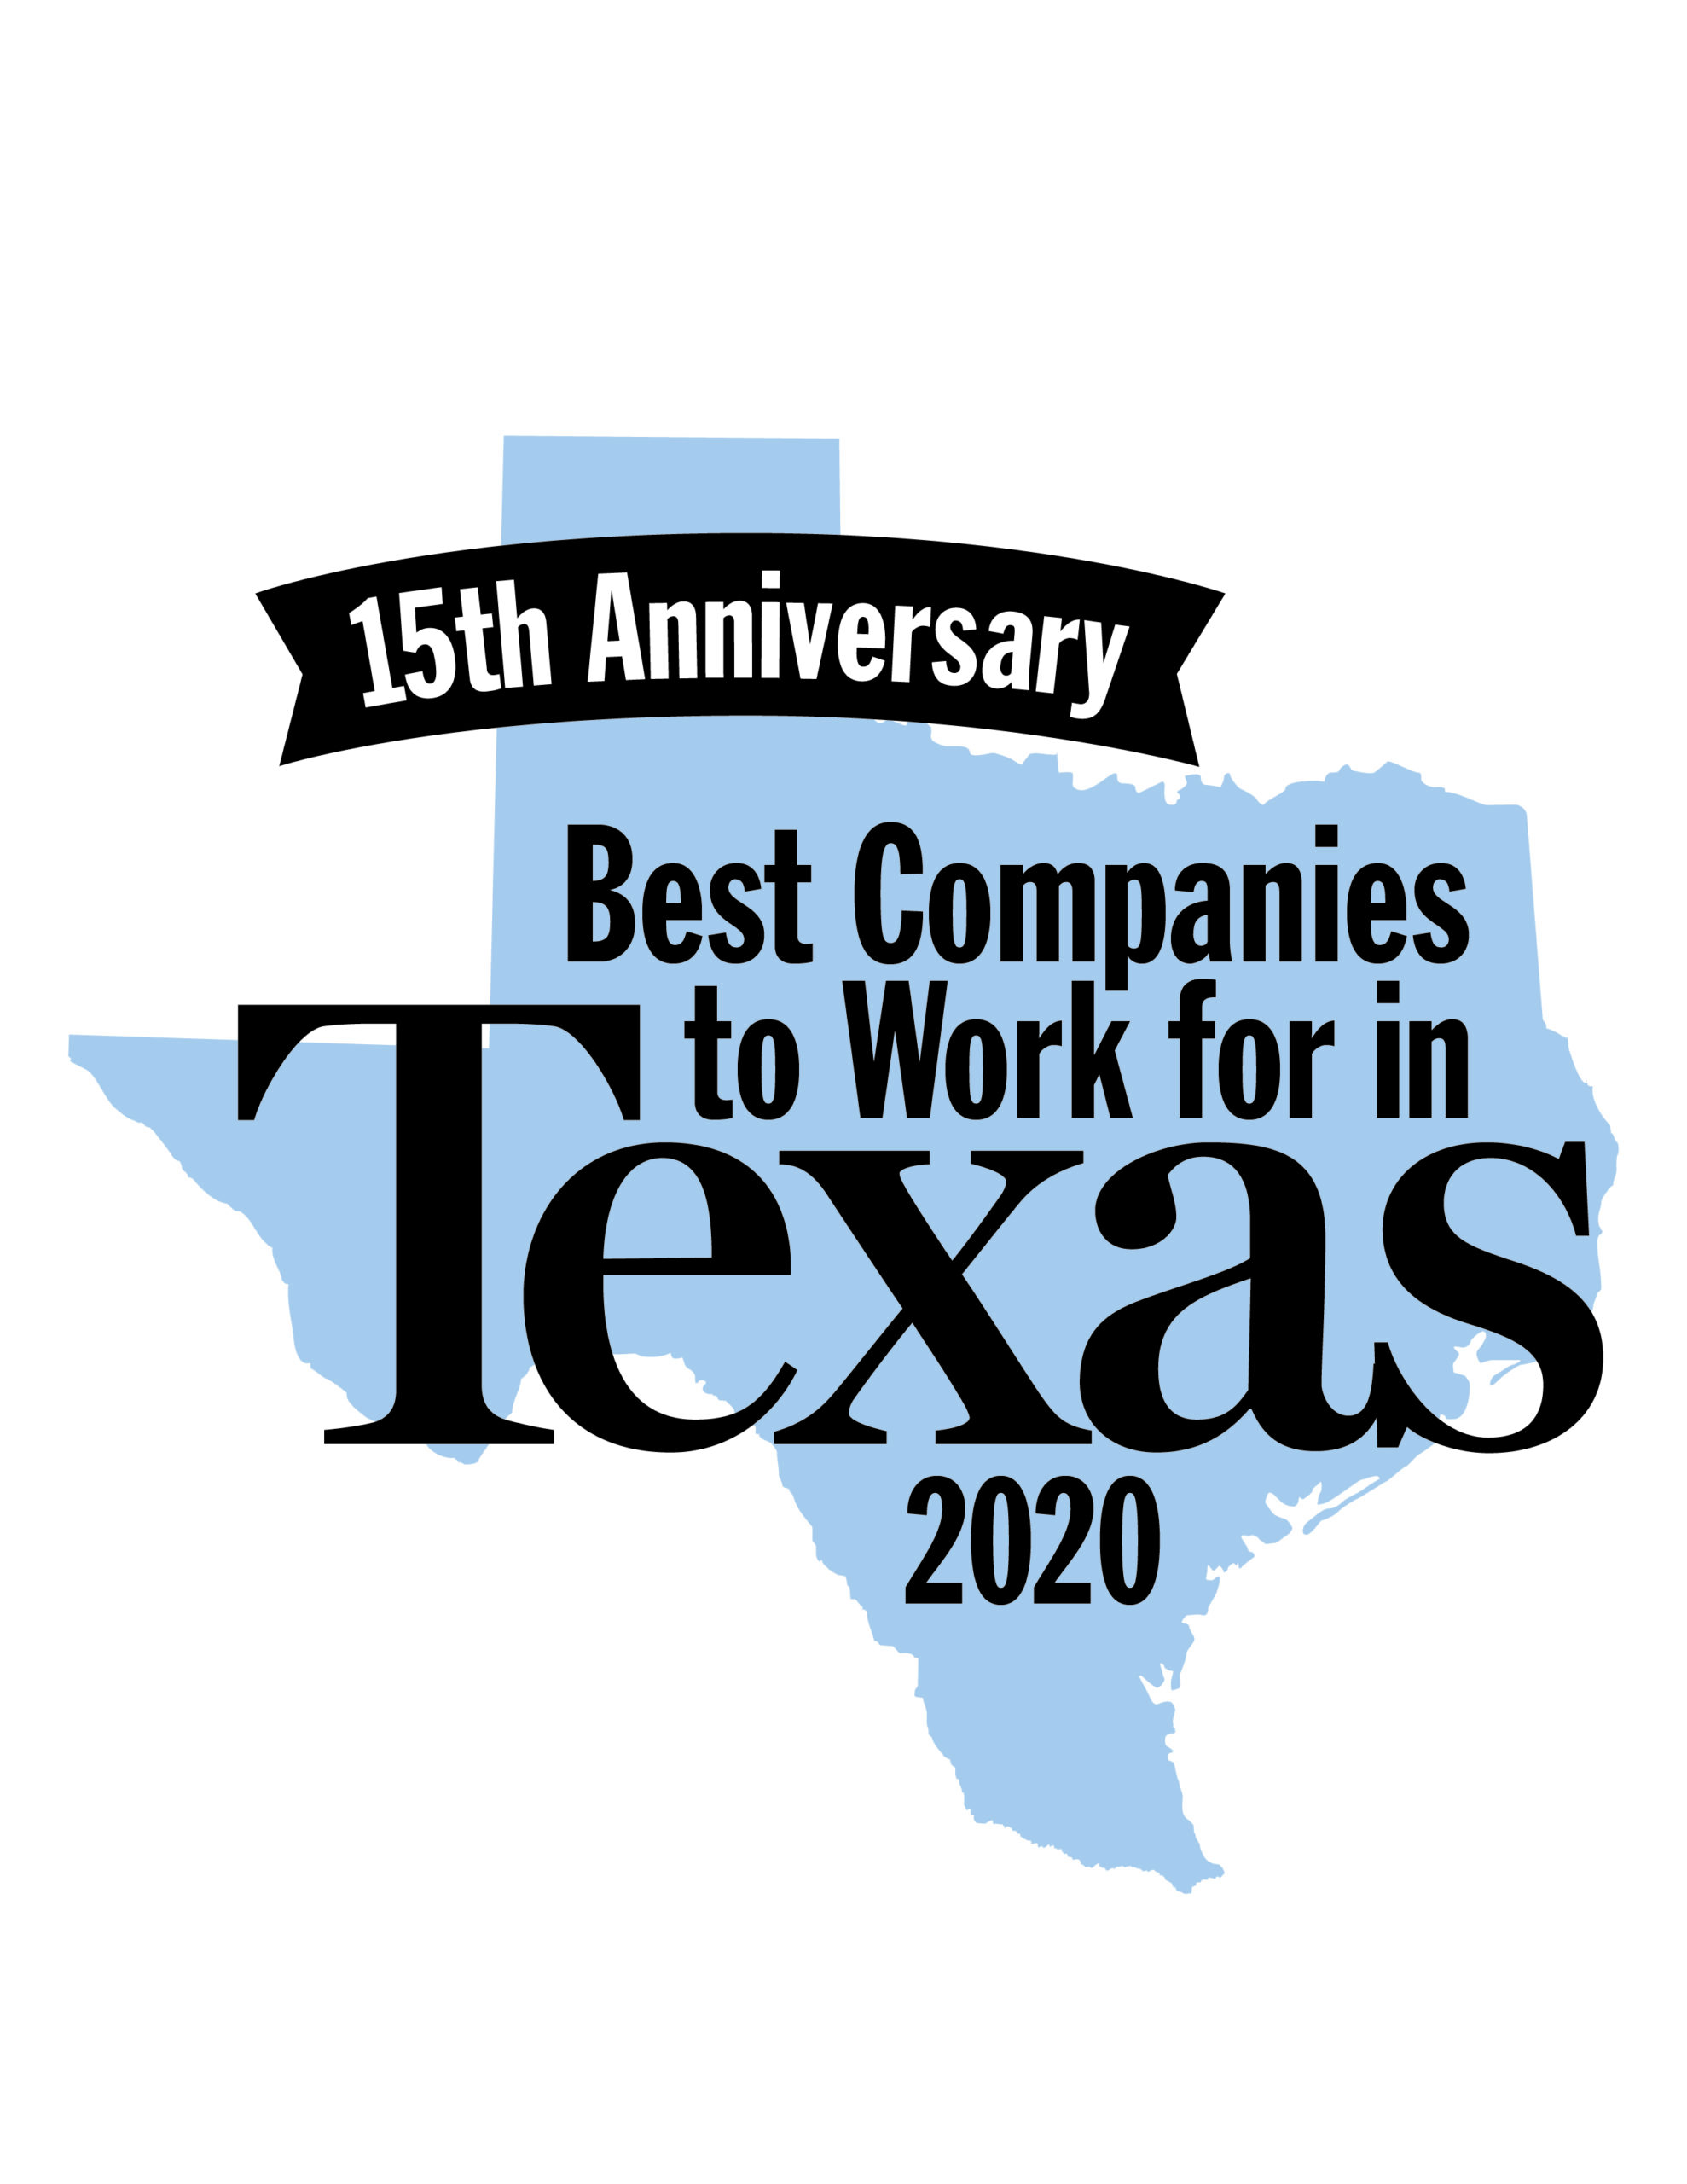 BCTW 15th Anniversary logo